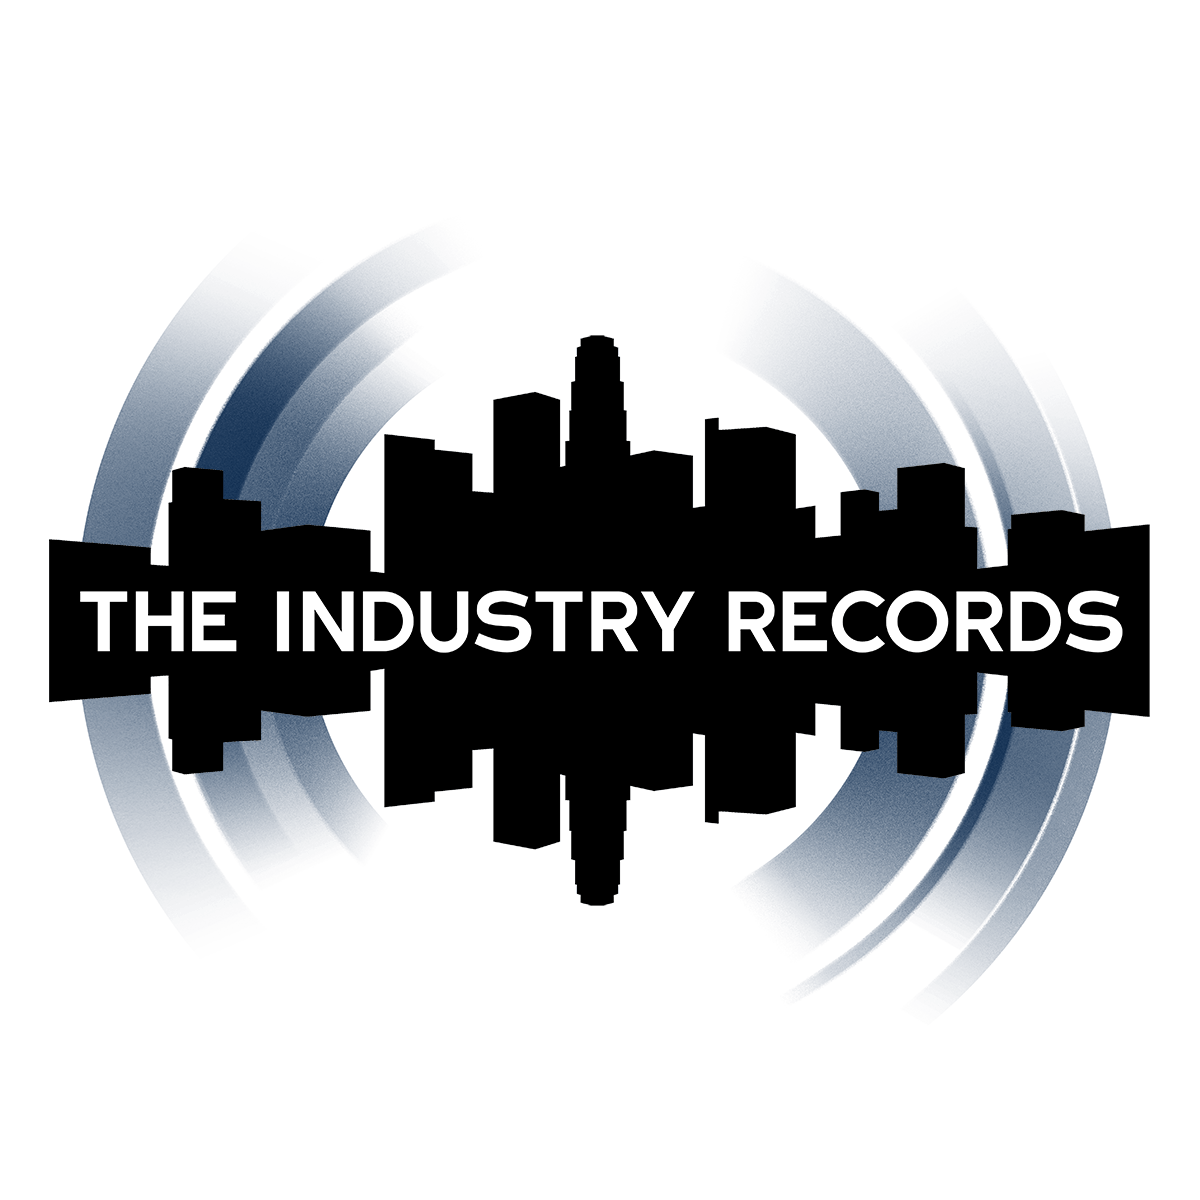 The Industry Records logo.